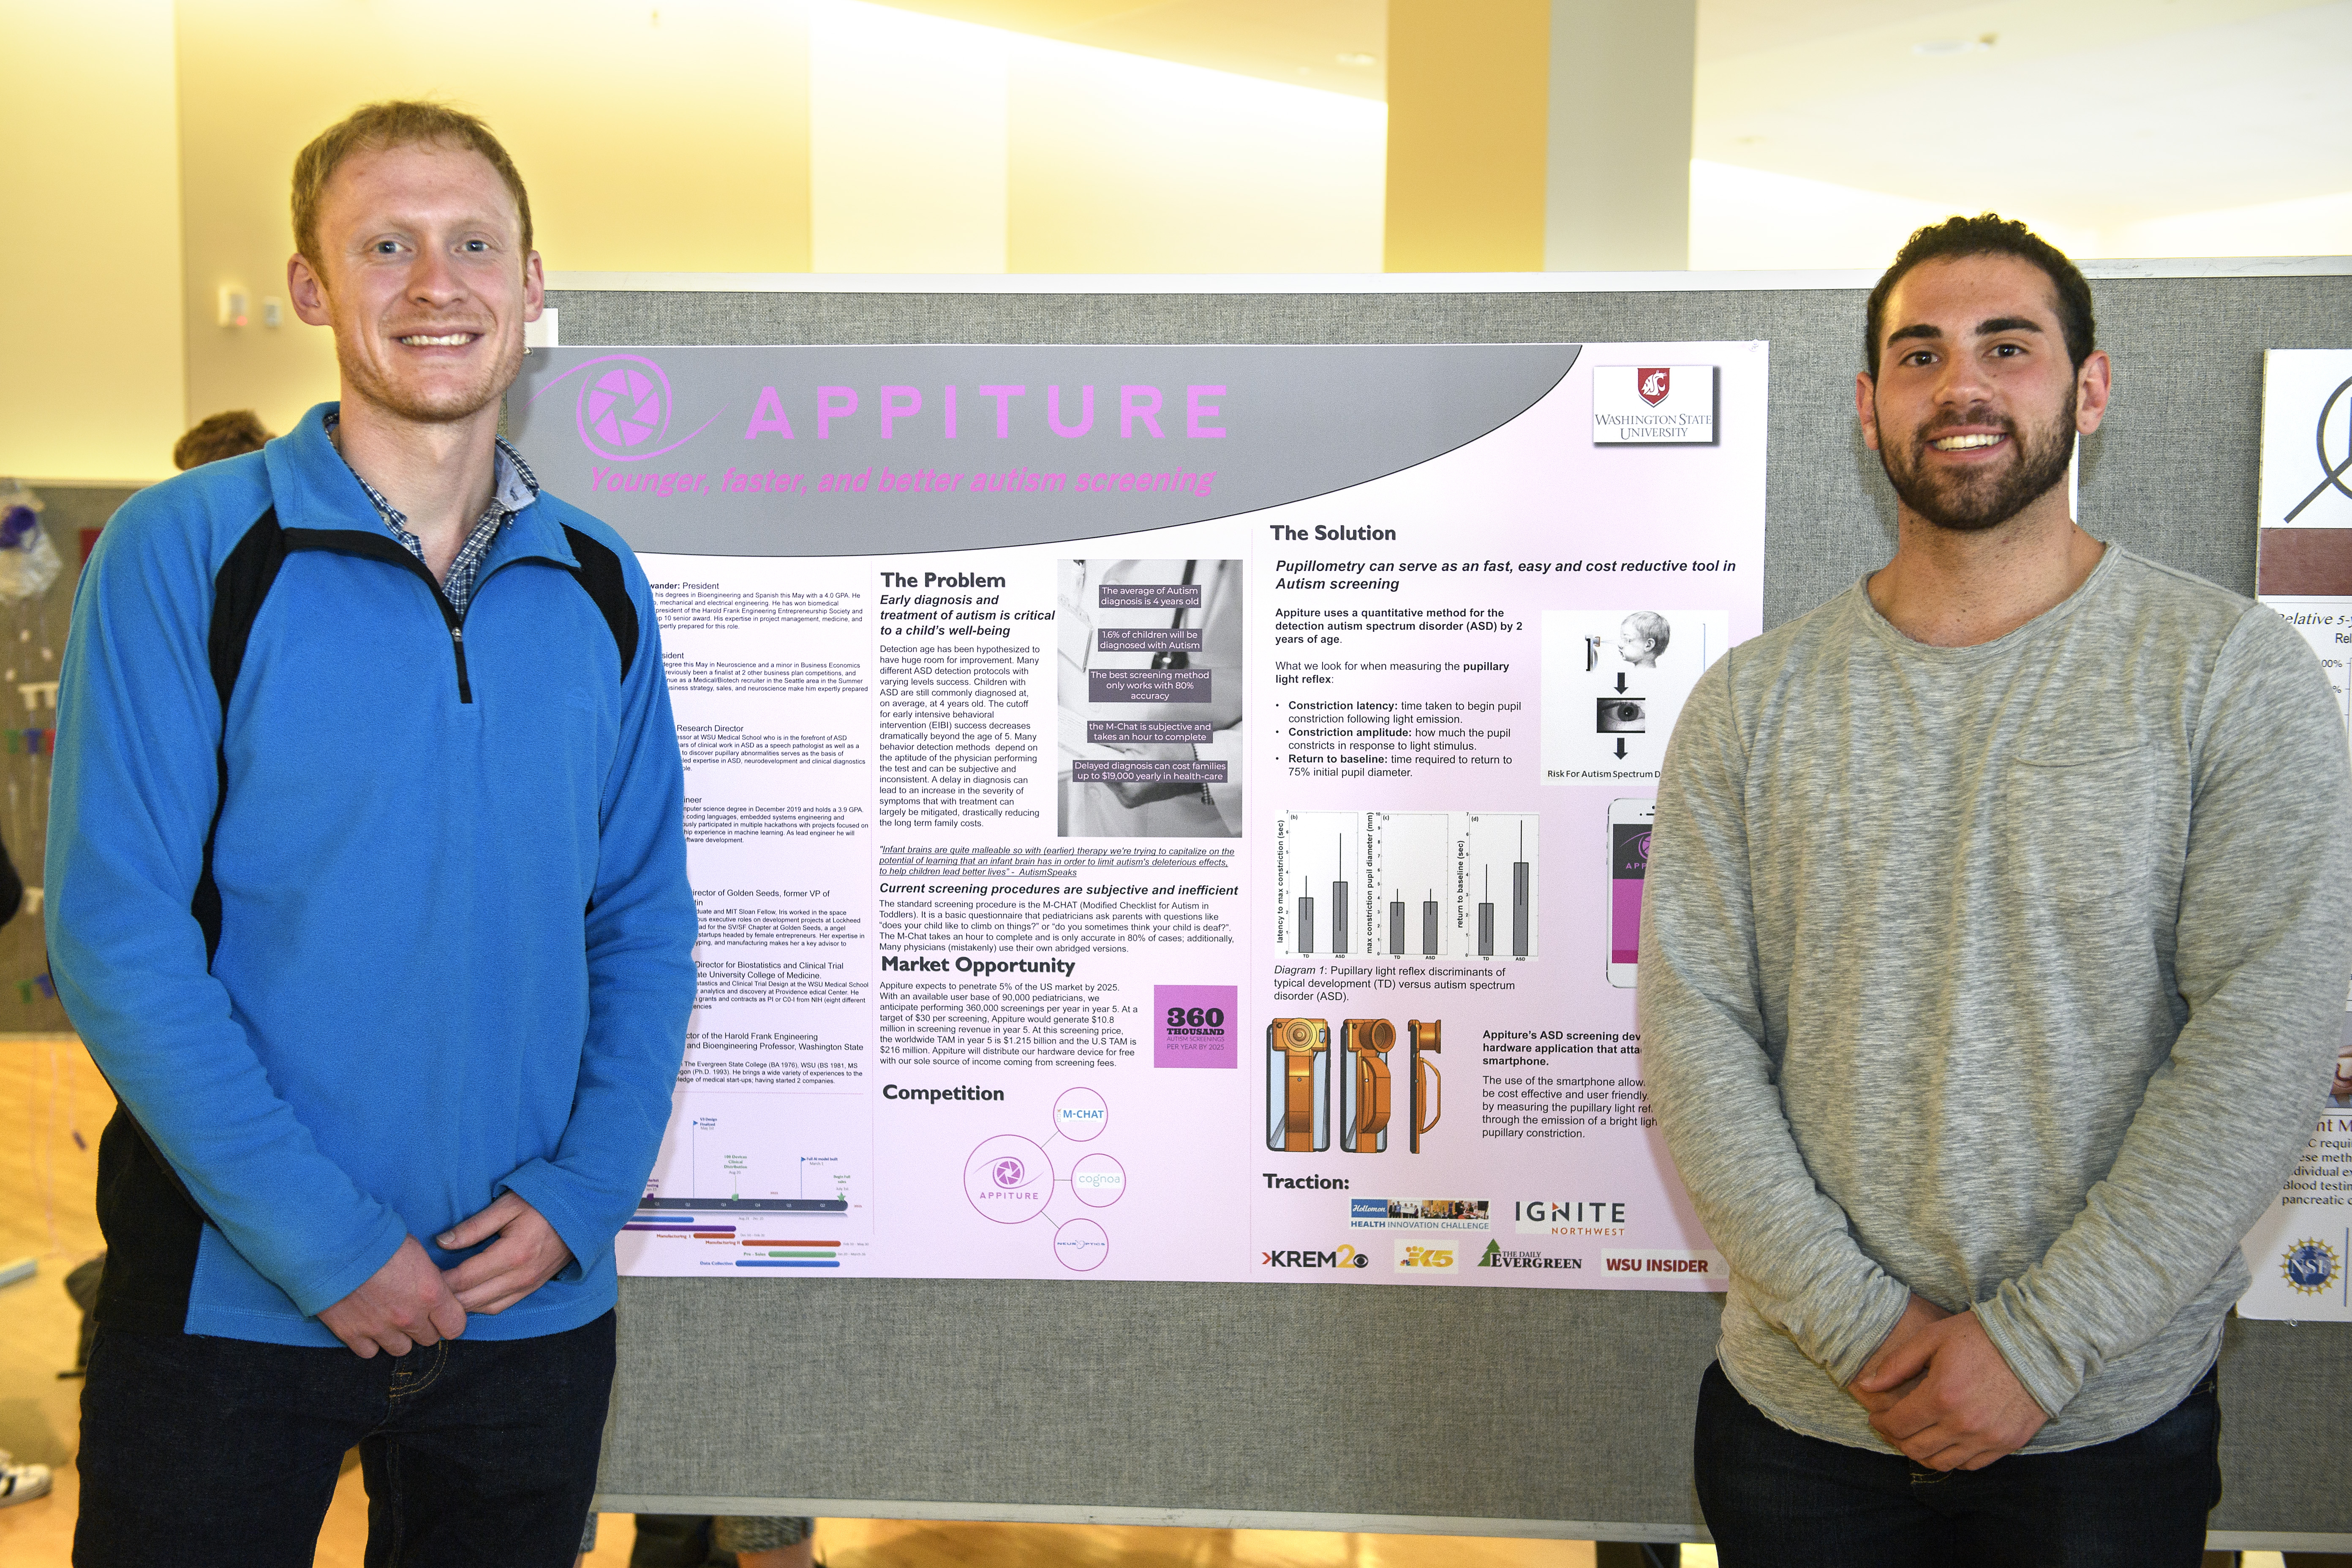 Lars Neuenschwander and TJ Goble standing in front of a poster describing their autism-detection app.